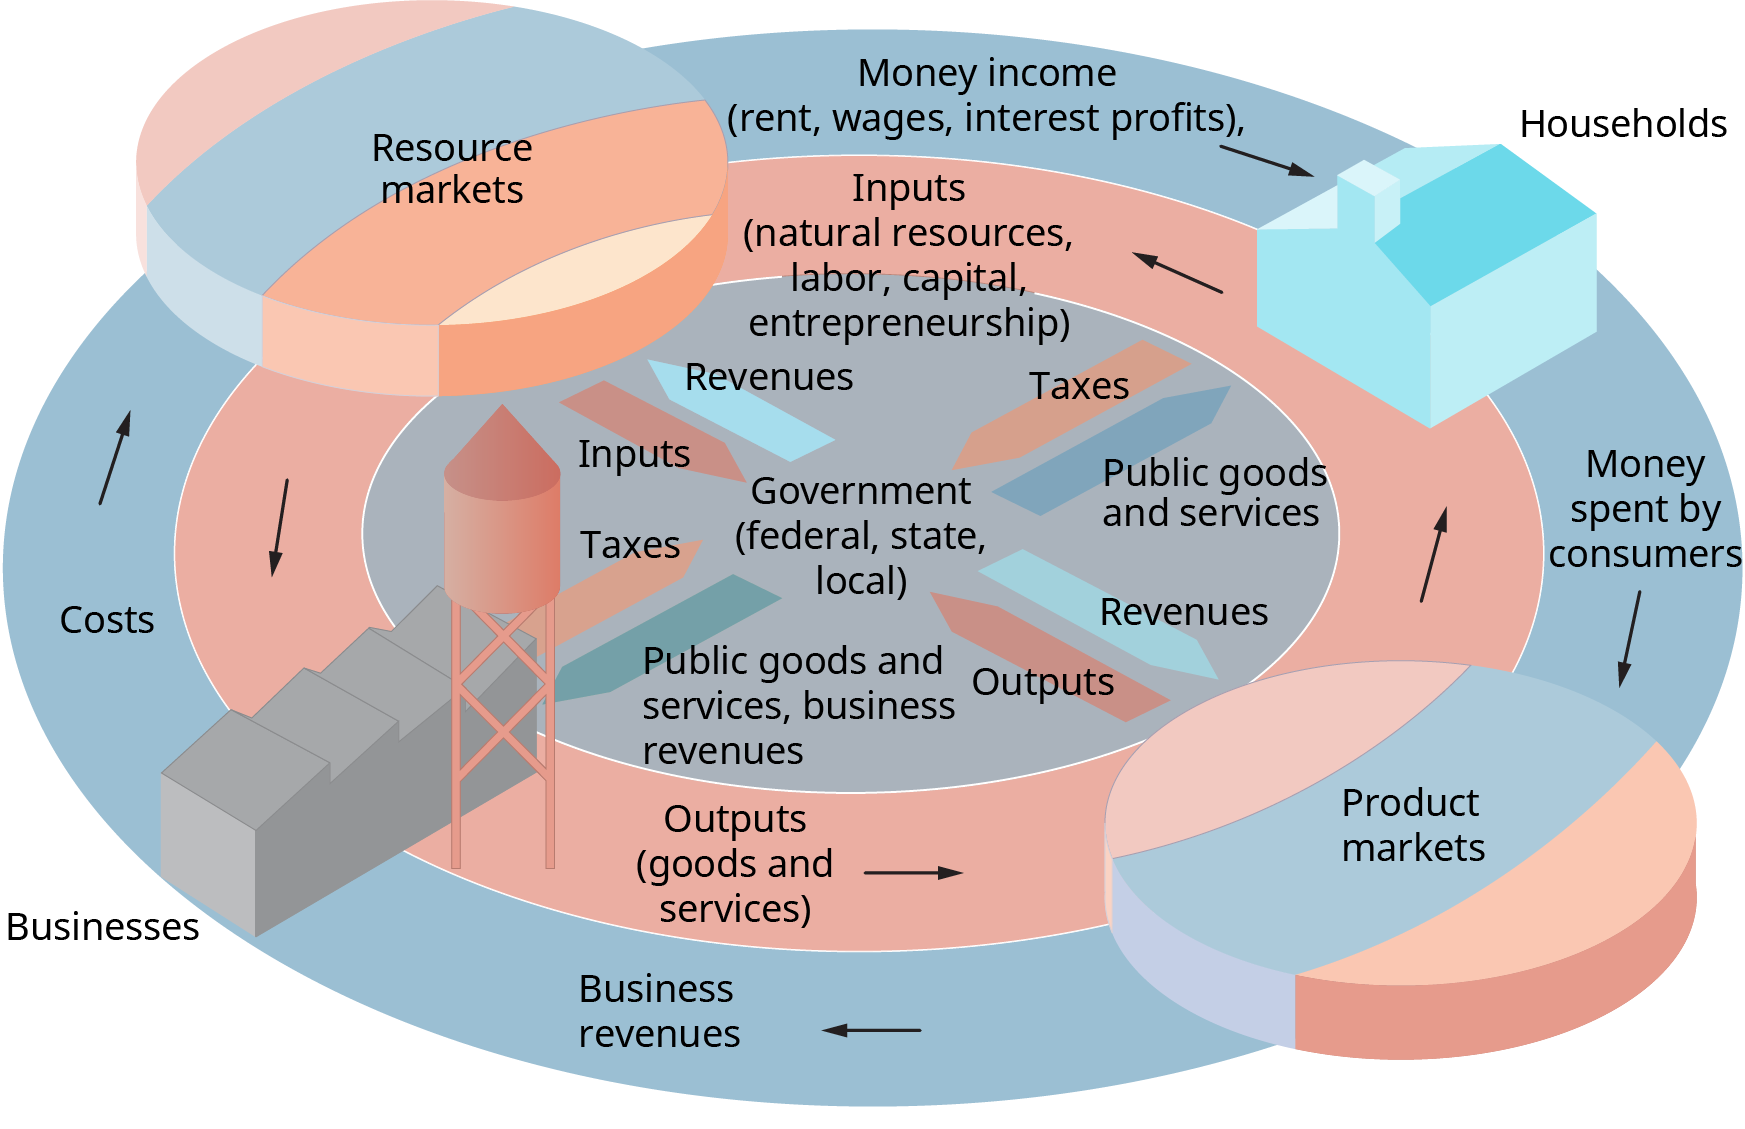 The diagram is a circle, with a labeled core. There is a band surrounding the core, and an outer band surrounding both the core and inner band. The outward flow of the outer band is labeled as follows. Money income, such as rent, wages, and interest profits, goes into households. Money is then spent by consumers in product markets. This flows into business revenues, which flows into costs, then into resource markets. Next is the inner band, which is labeled as follows. The resource markets outputs, such goods and services, flows into inputs, such as natural resources, labor, capital, and entrepreneurship. In the center of the core is labeled Government, federal, state and local. Arrows pointing inward and outward are in pairs and are labeled. From the resource markets, In arrow, inputs; out arrow revenues. From the households, In arrow taxes; out arrow public goods and services. From the product markets, in arrow outputs; out arrow revenues. From businesses, in arrow taxes; out arrow public goods and services, business revenues.